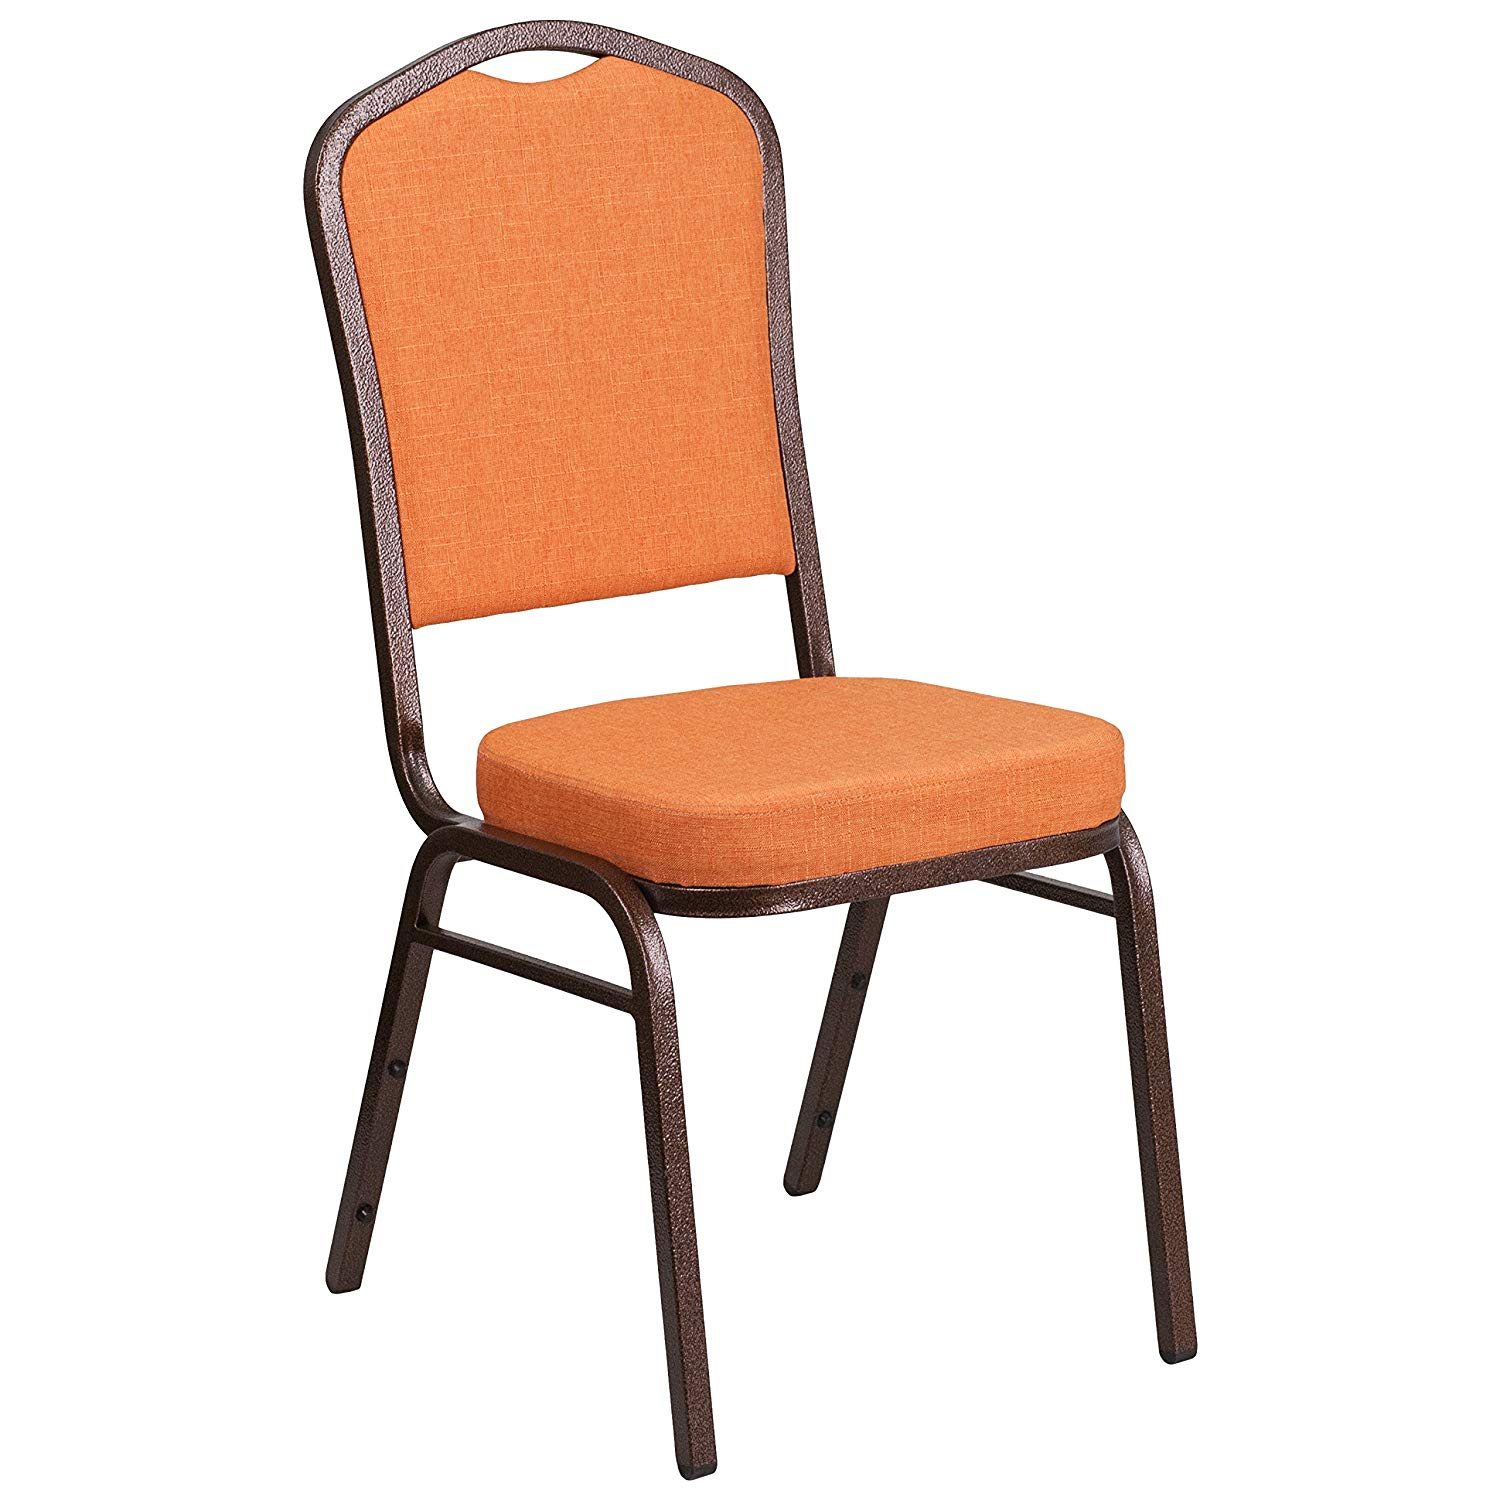 #42 - CROWN BACK BANQUET CHAIR WITH ORANGE FABRIC